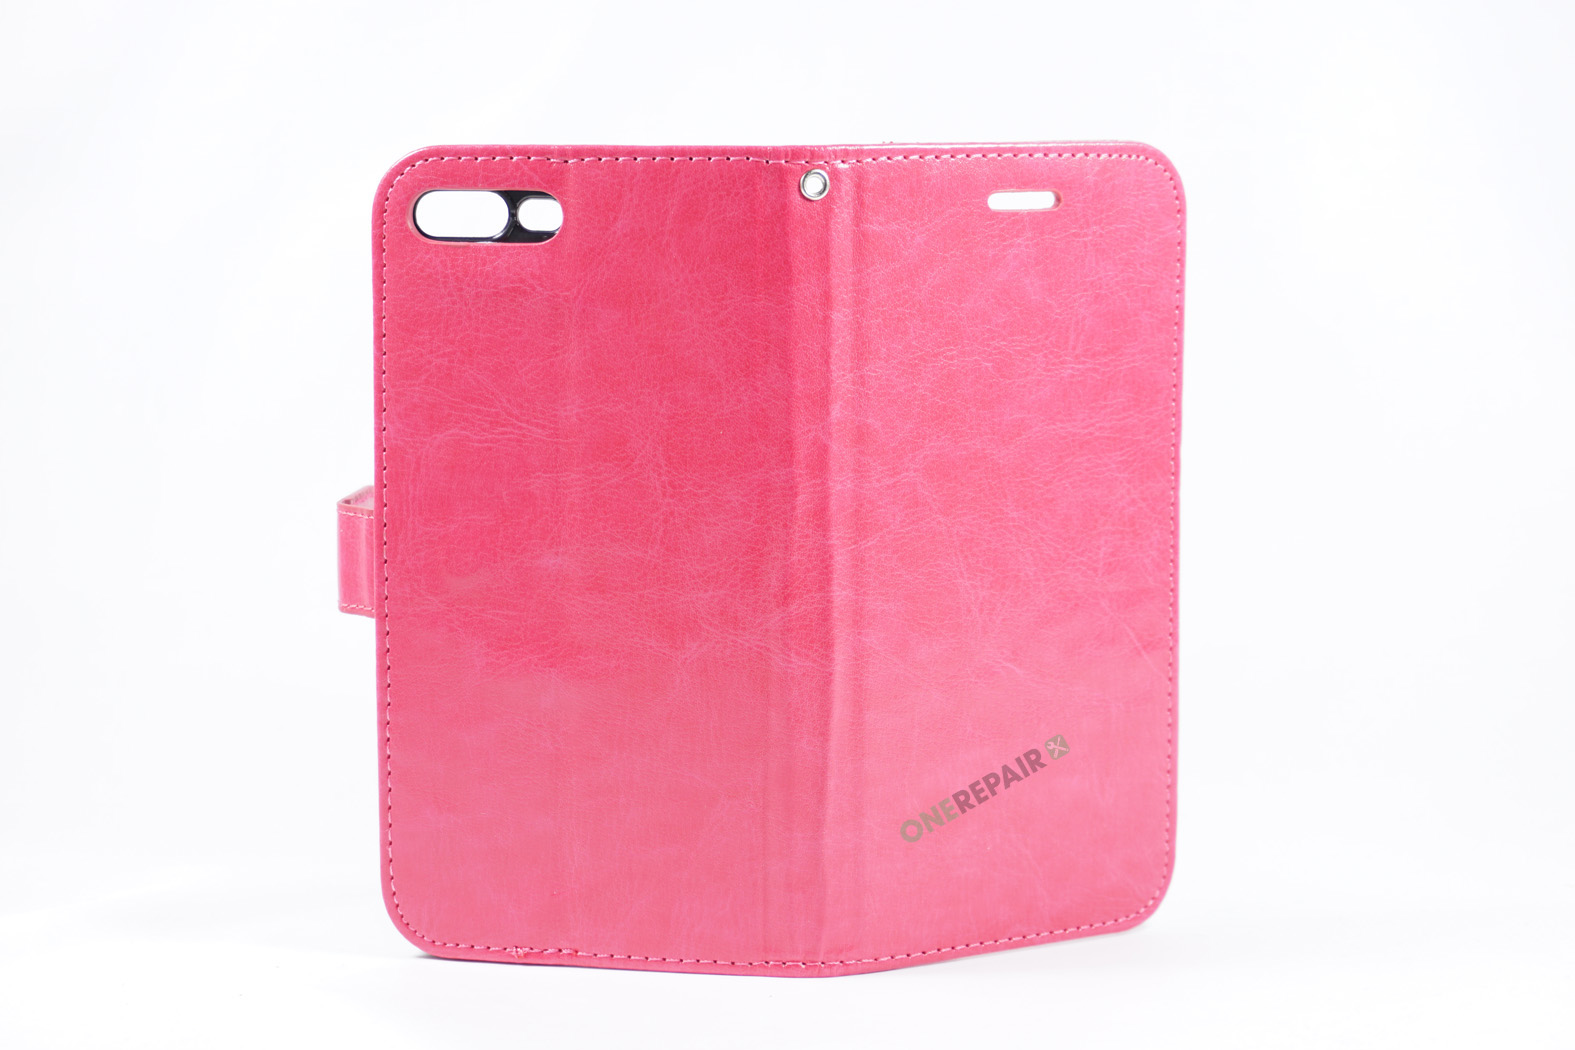 351830_iPhone_7+_8+_Flipcover_Classic_Cover_Pink_Lyseroed_OneRepair_WM_00003